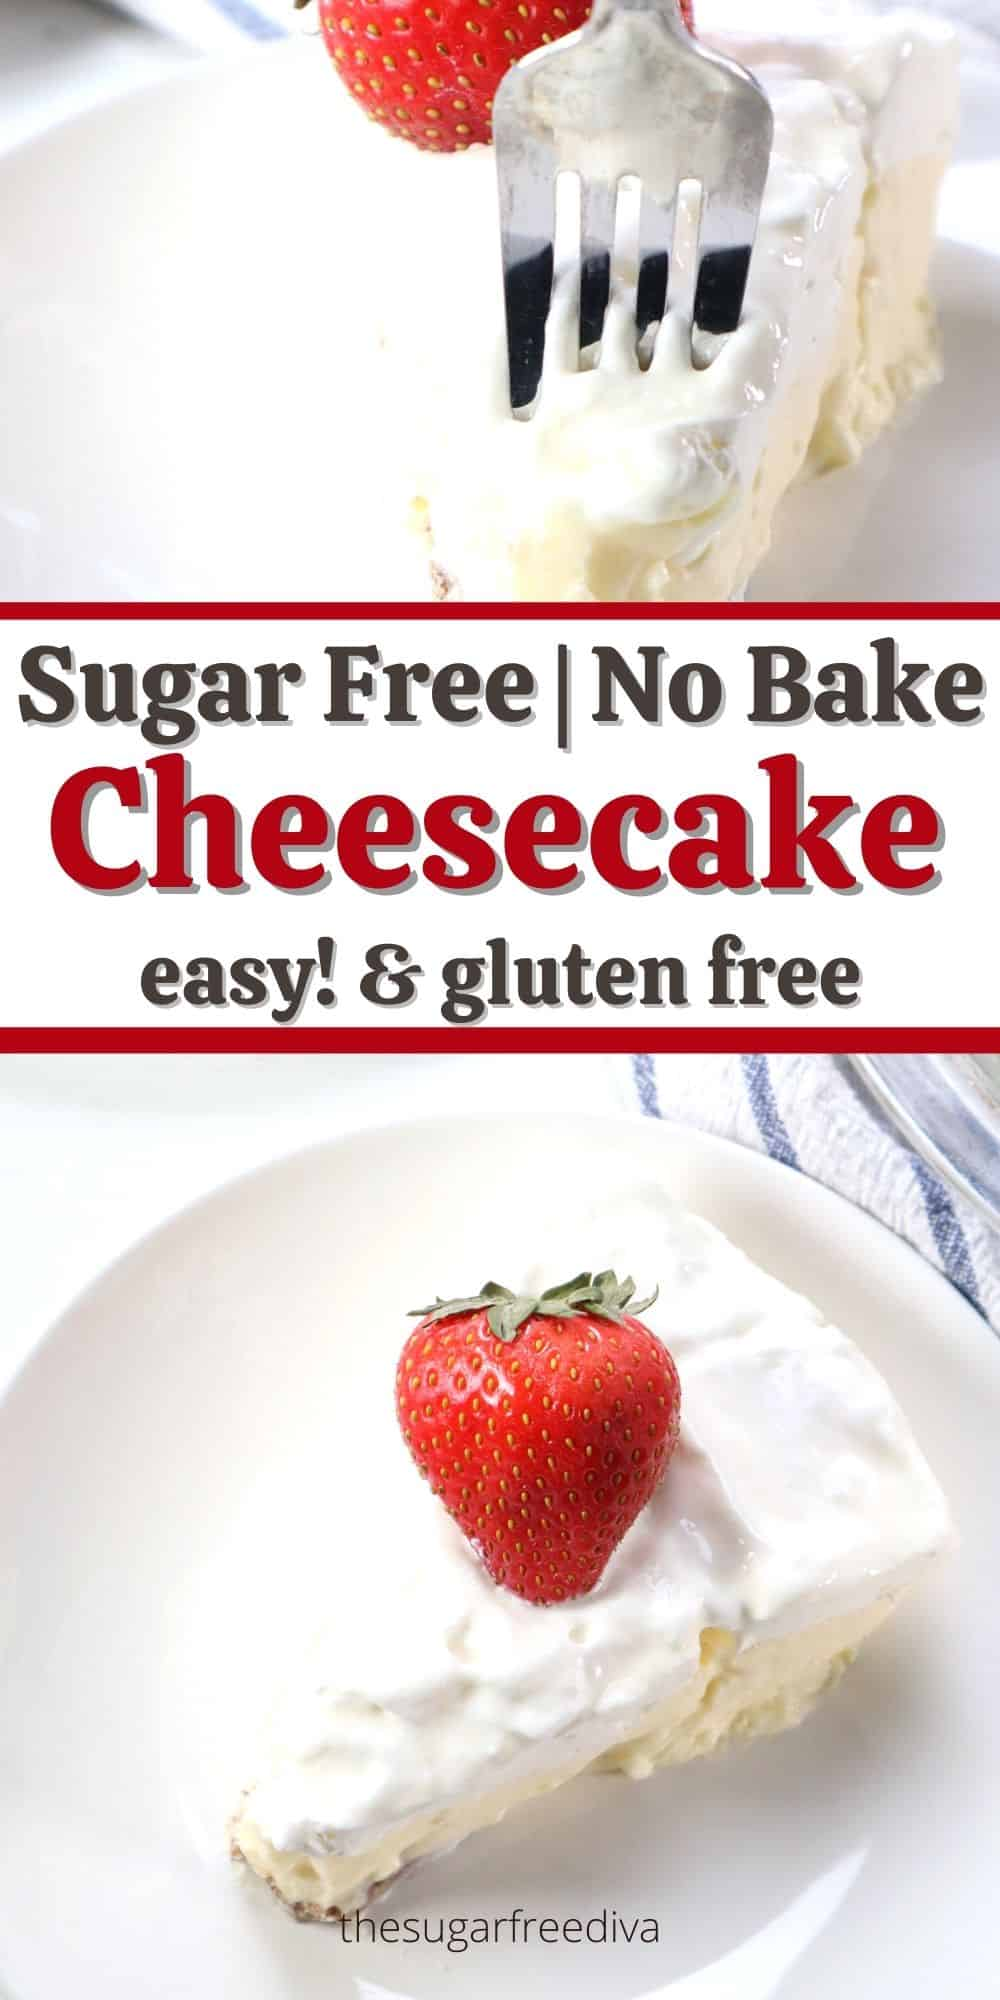 Sugar Free No Bake Pudding Cheesecake